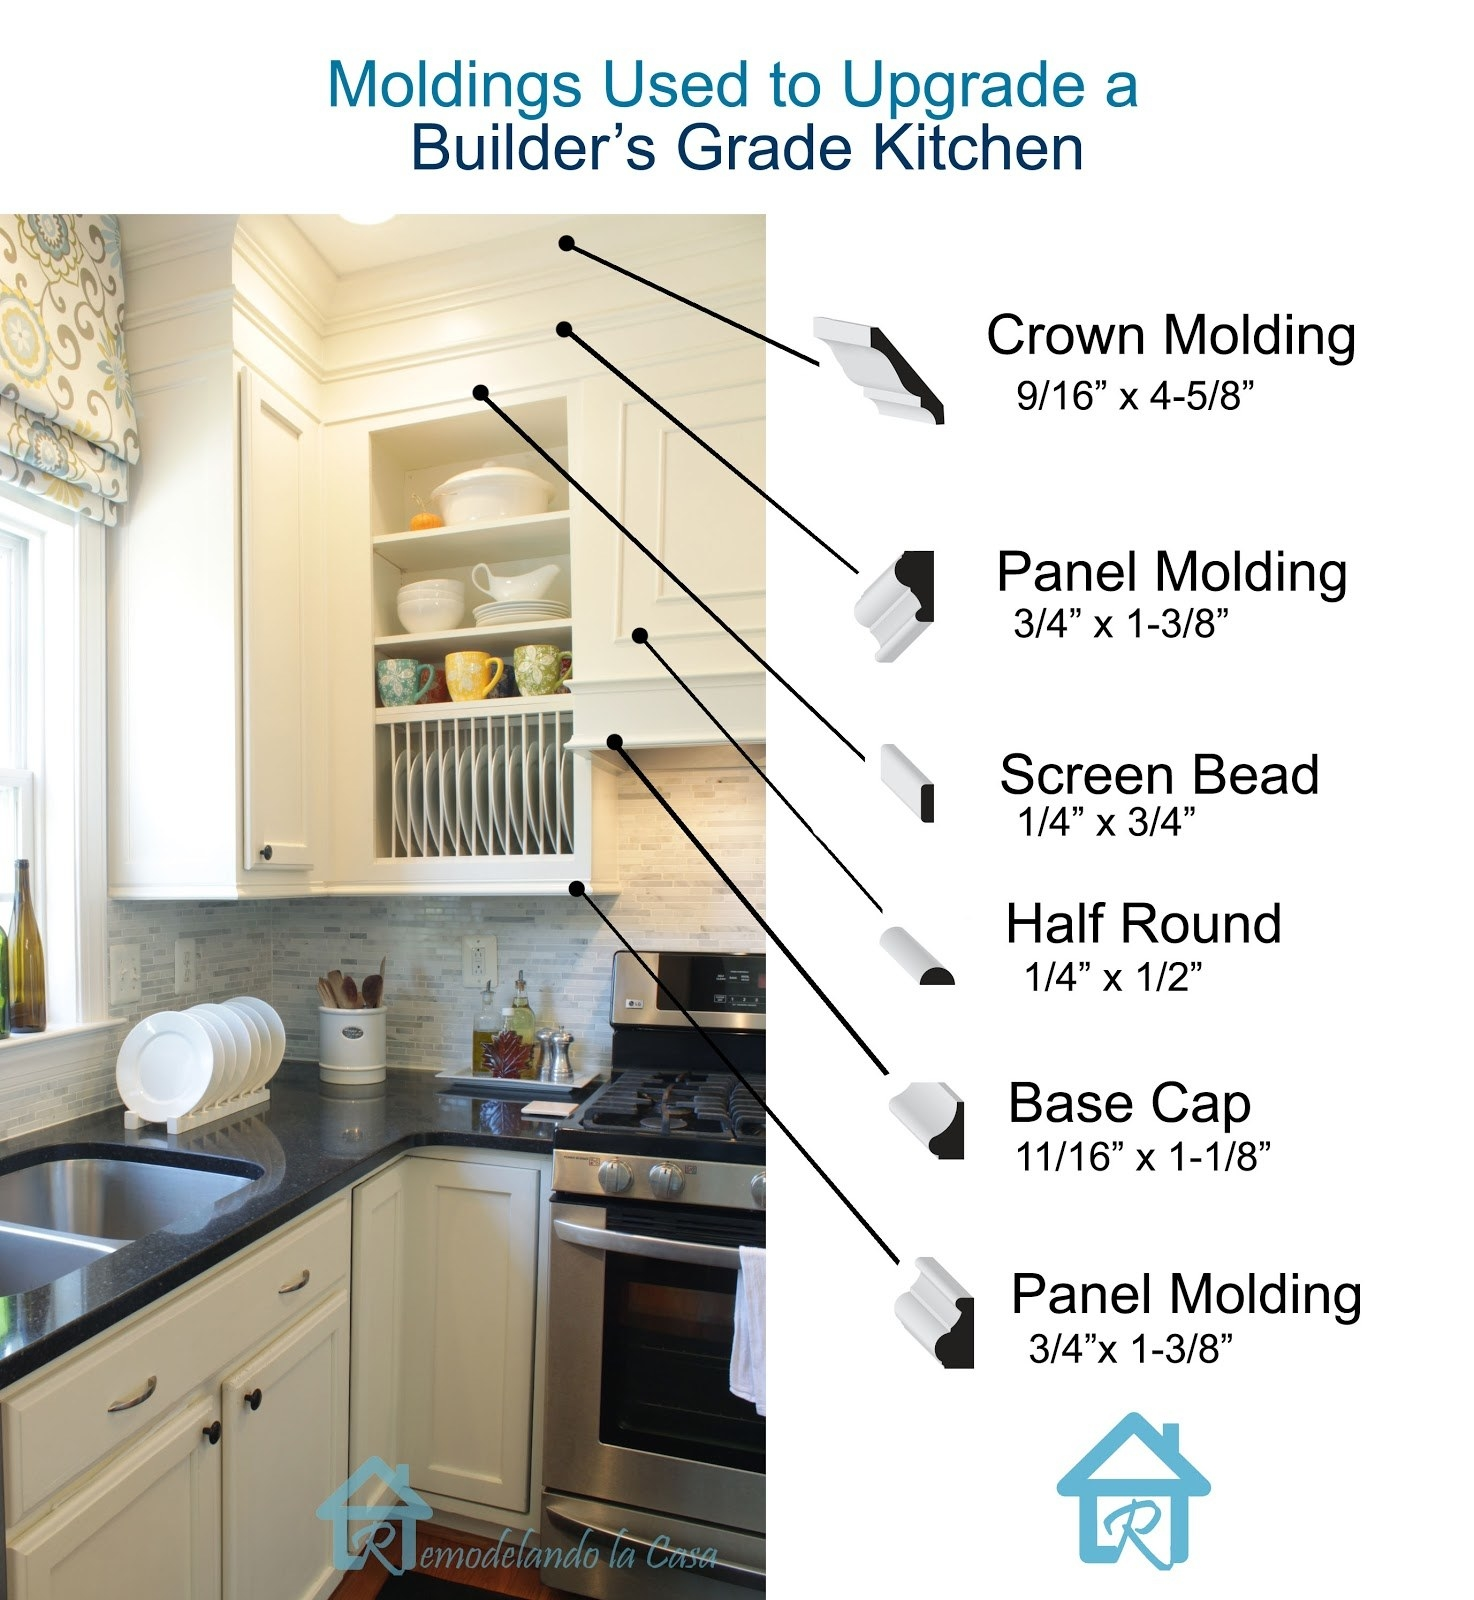 A graphic showing the different kind of molding used on a cabinet